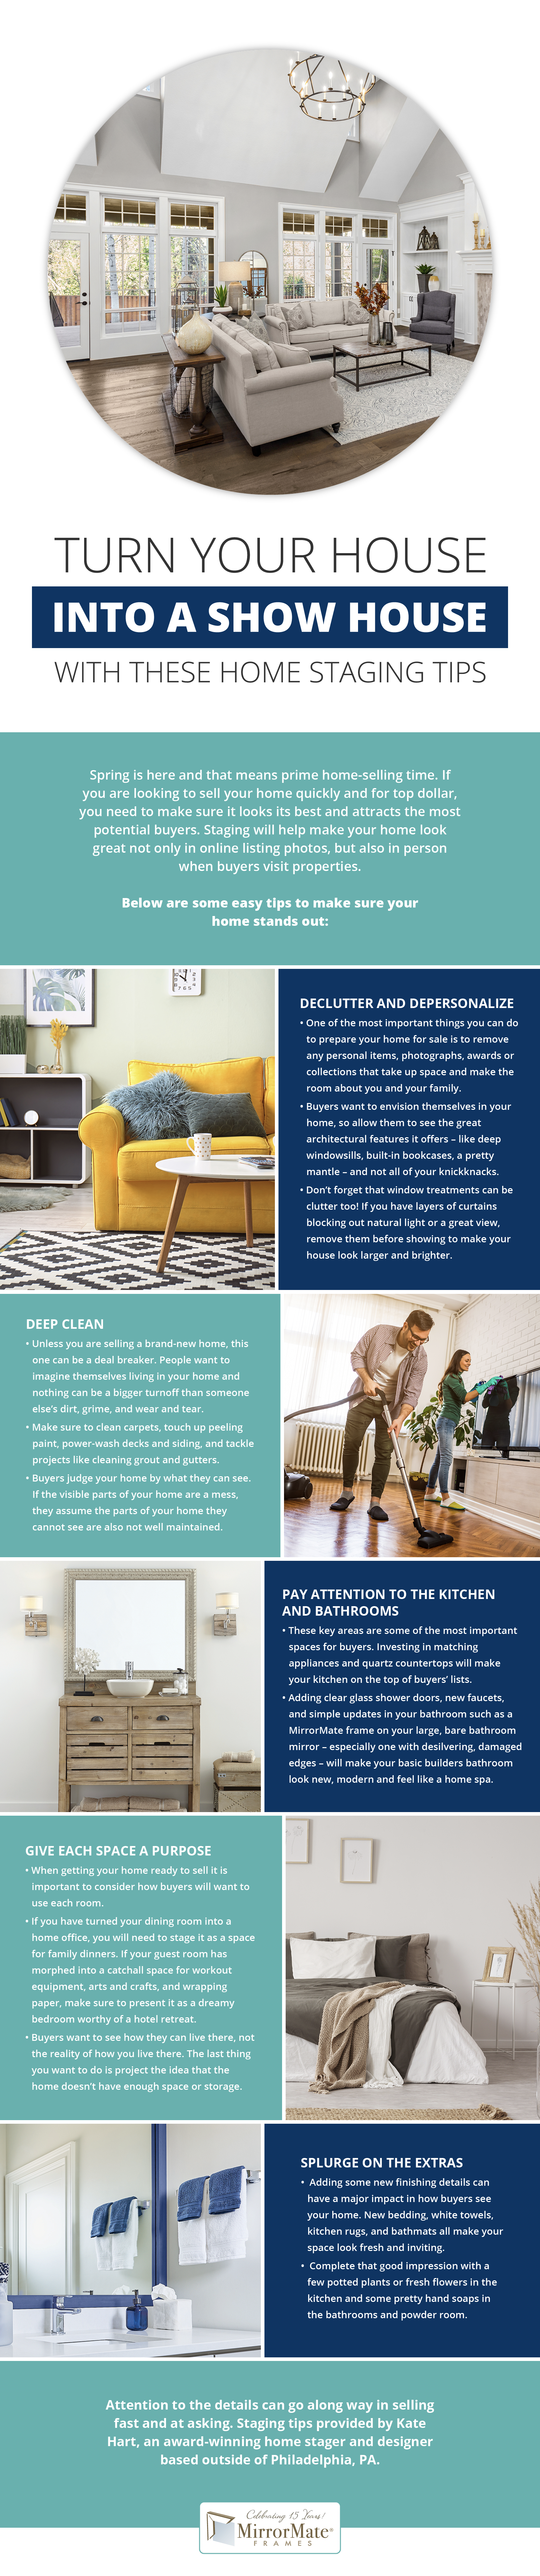 Turn Your House Into a Show House With These Home Staging Tips Infographic